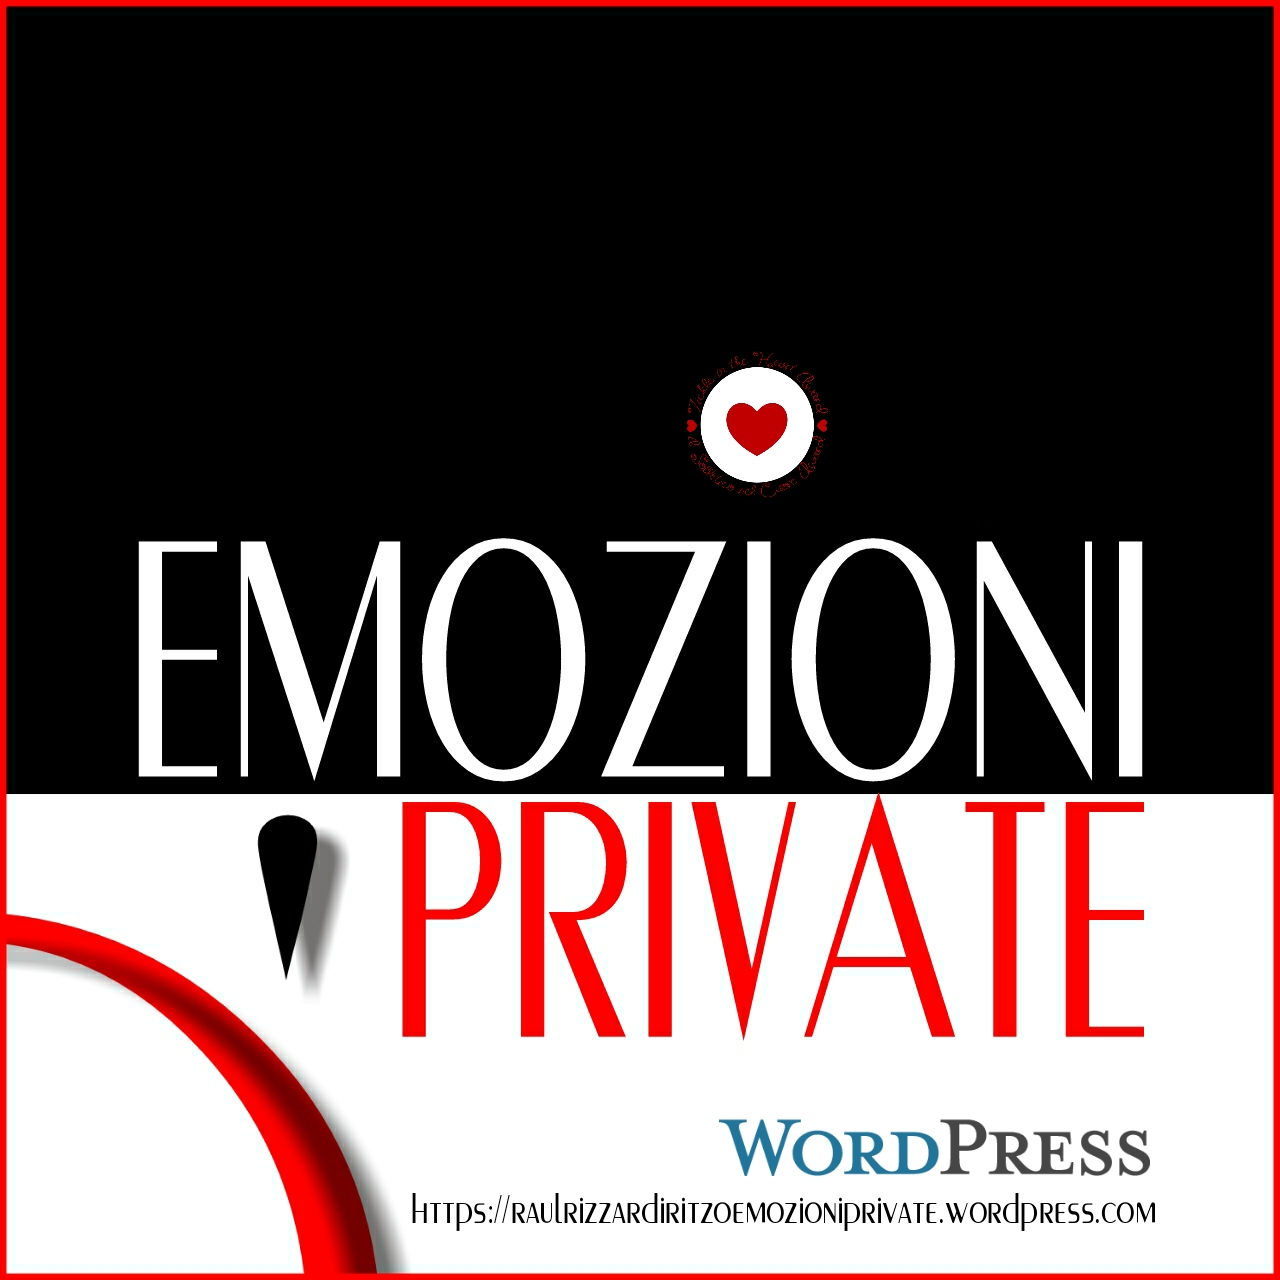 EMOZIONI PRIVATE